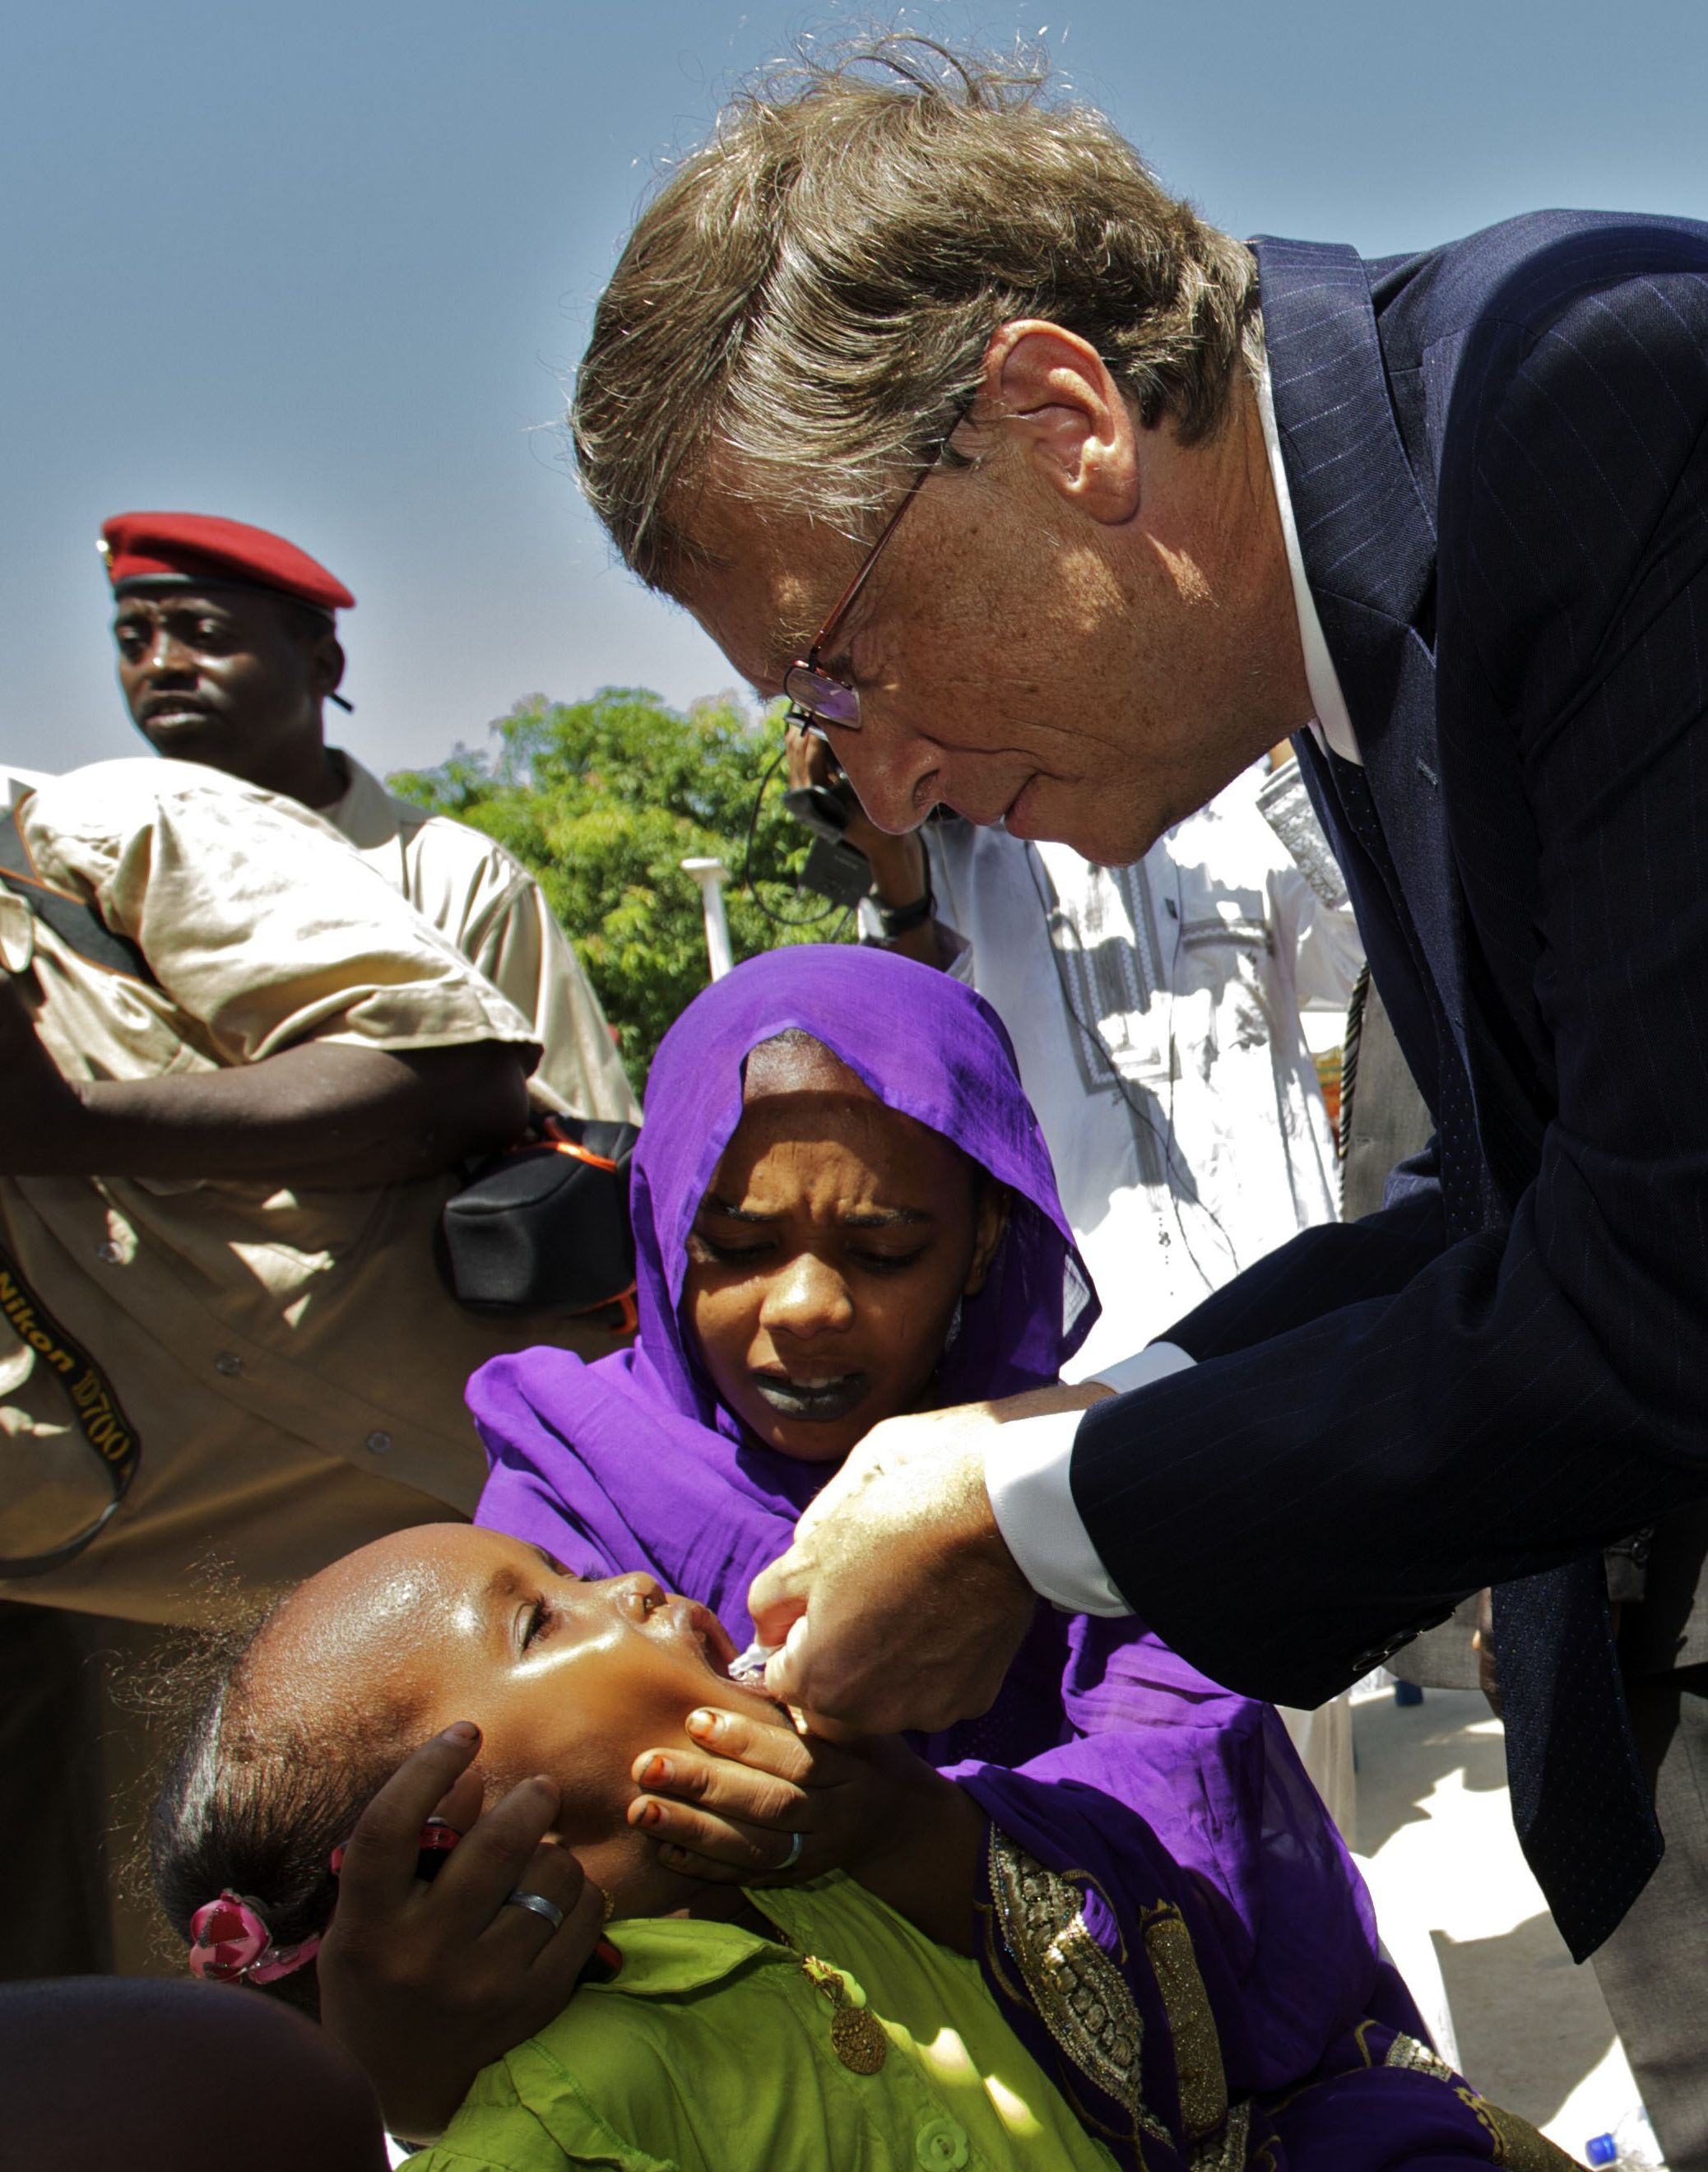 Bill Gates makes largest donation since 2000 with US$4.6 billion pledge